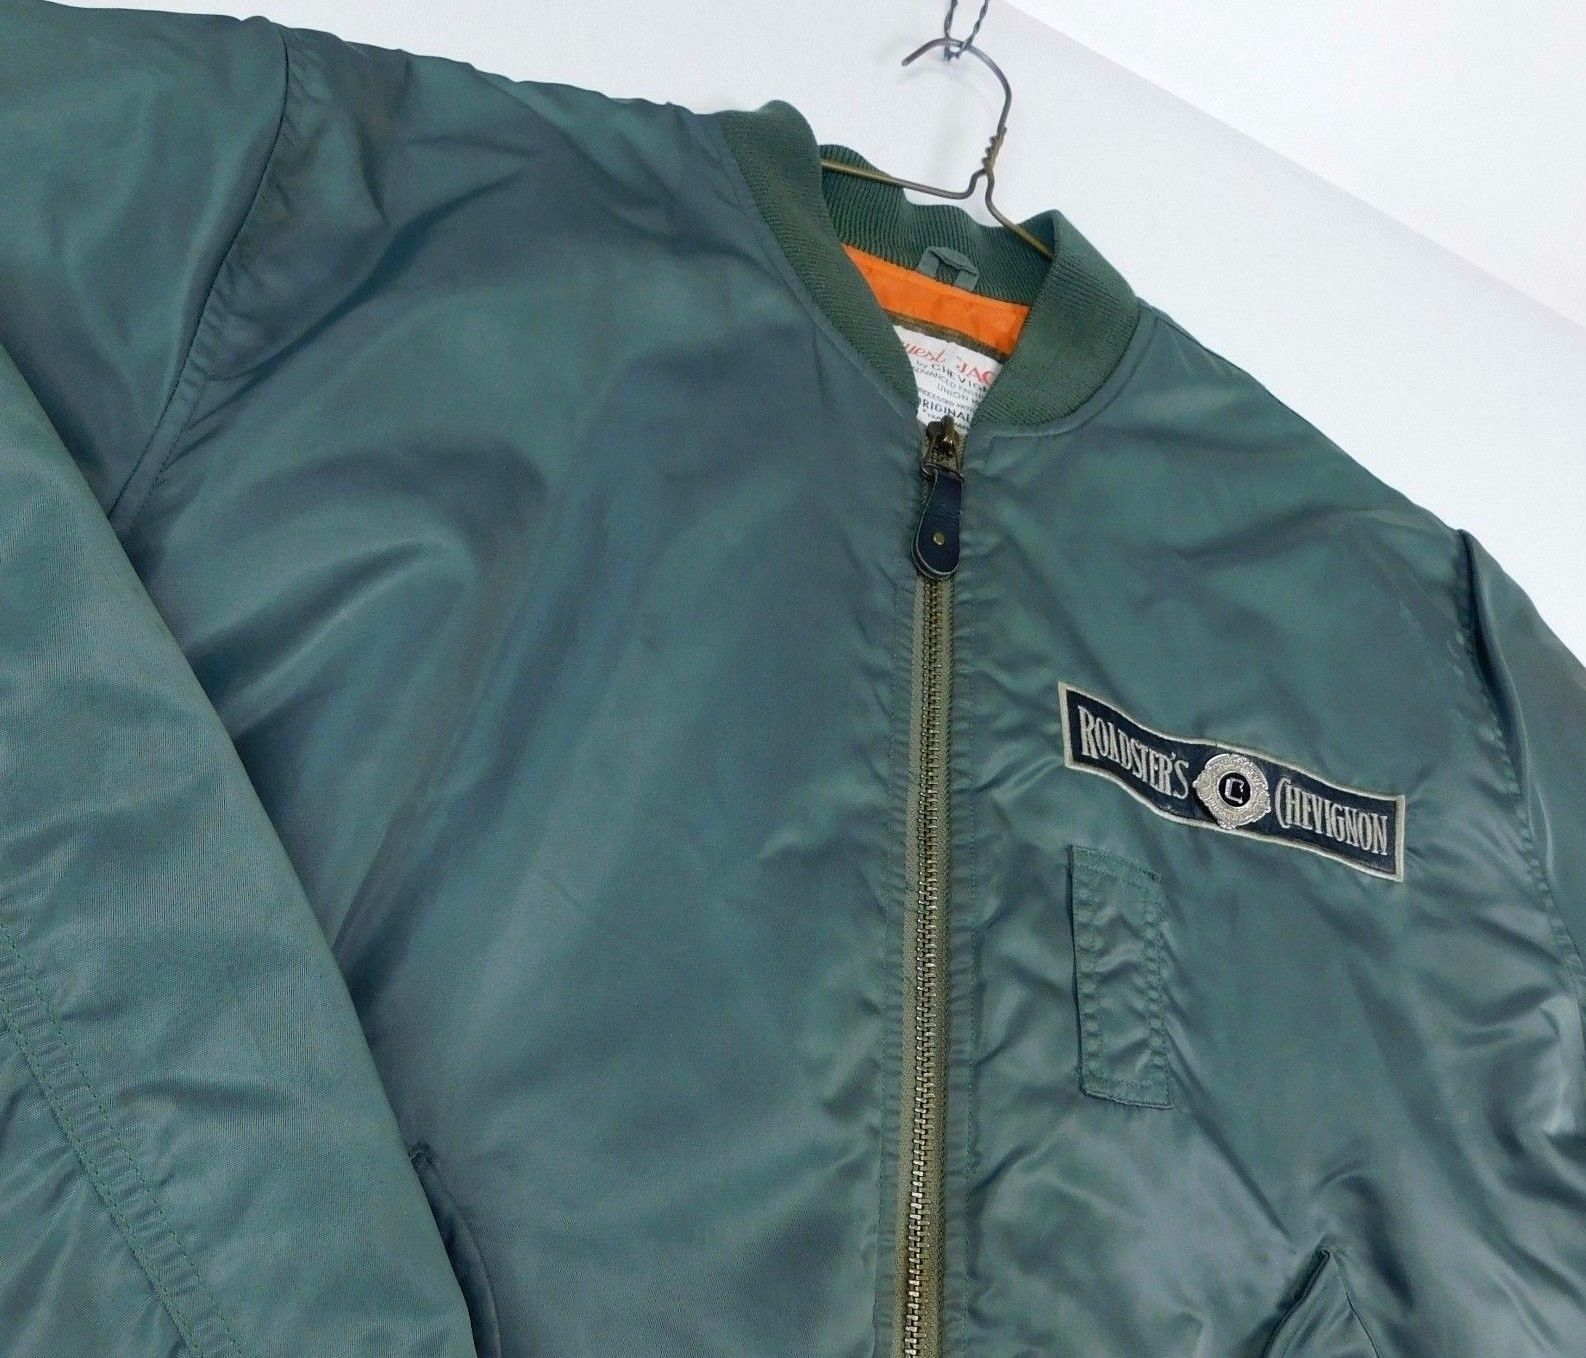 Primary image for Conquest Jack Chevignon Roads International Roadster's Sz XL Green Bomber Jacket